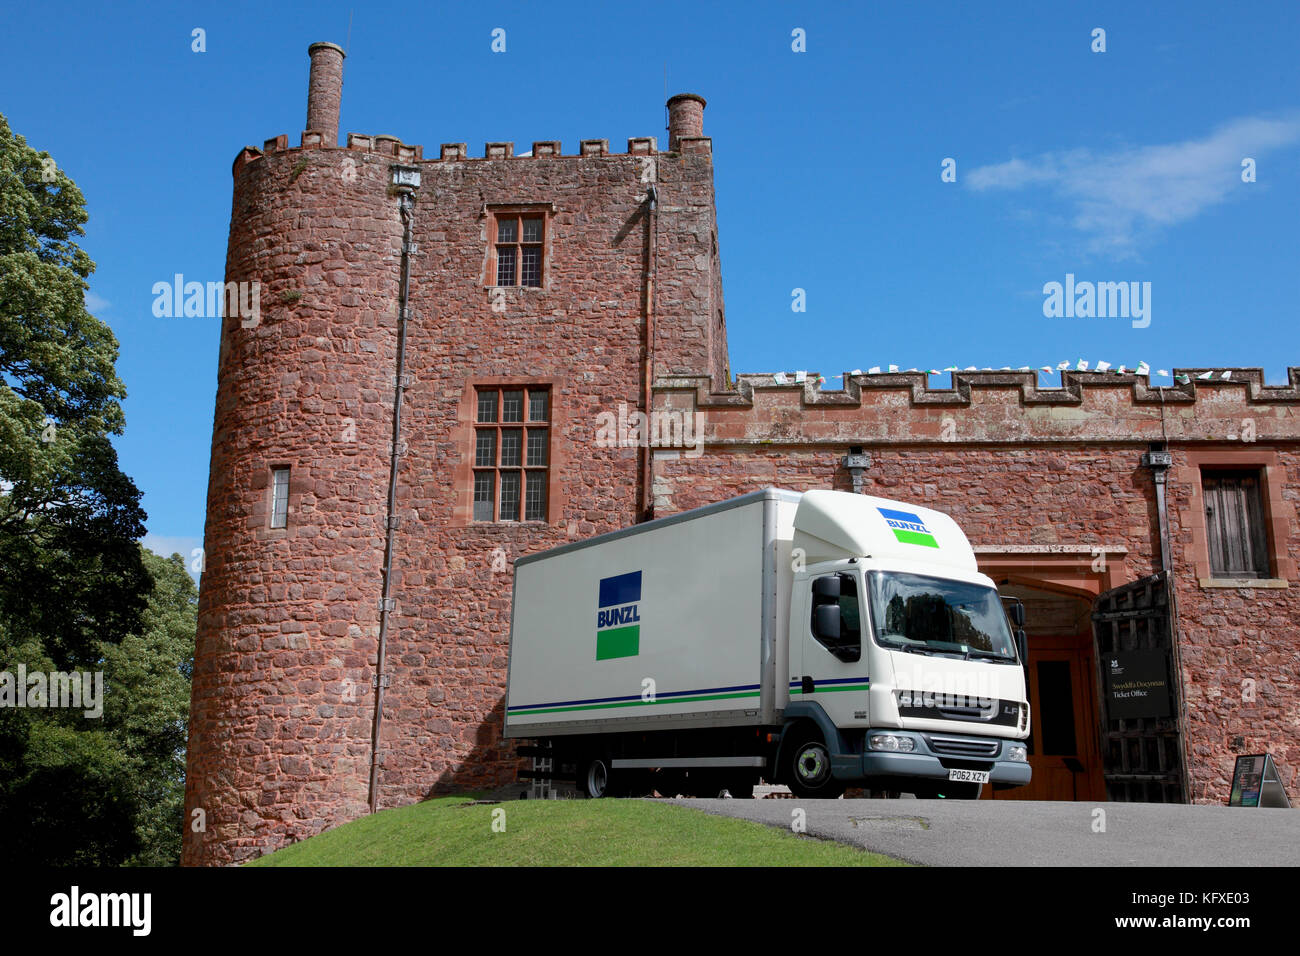 A Bunzl lorry delivering supplies to Powis Castle near Welshpool, Wales - Stock Image